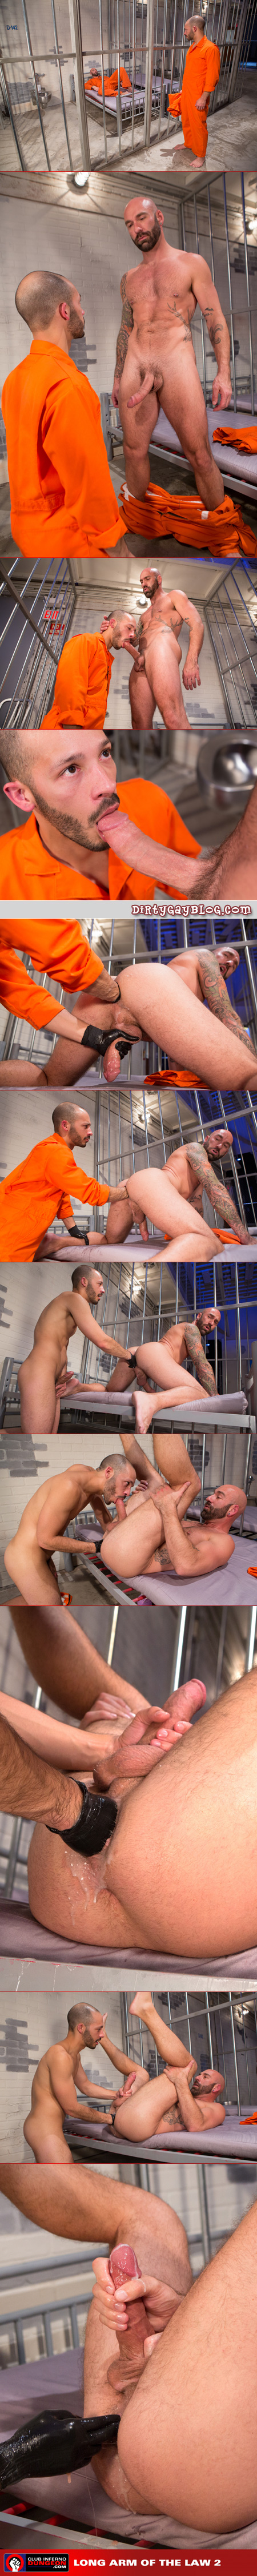 Male prisoner demands that his new cellmate fist him in the ass in exchange for protection.